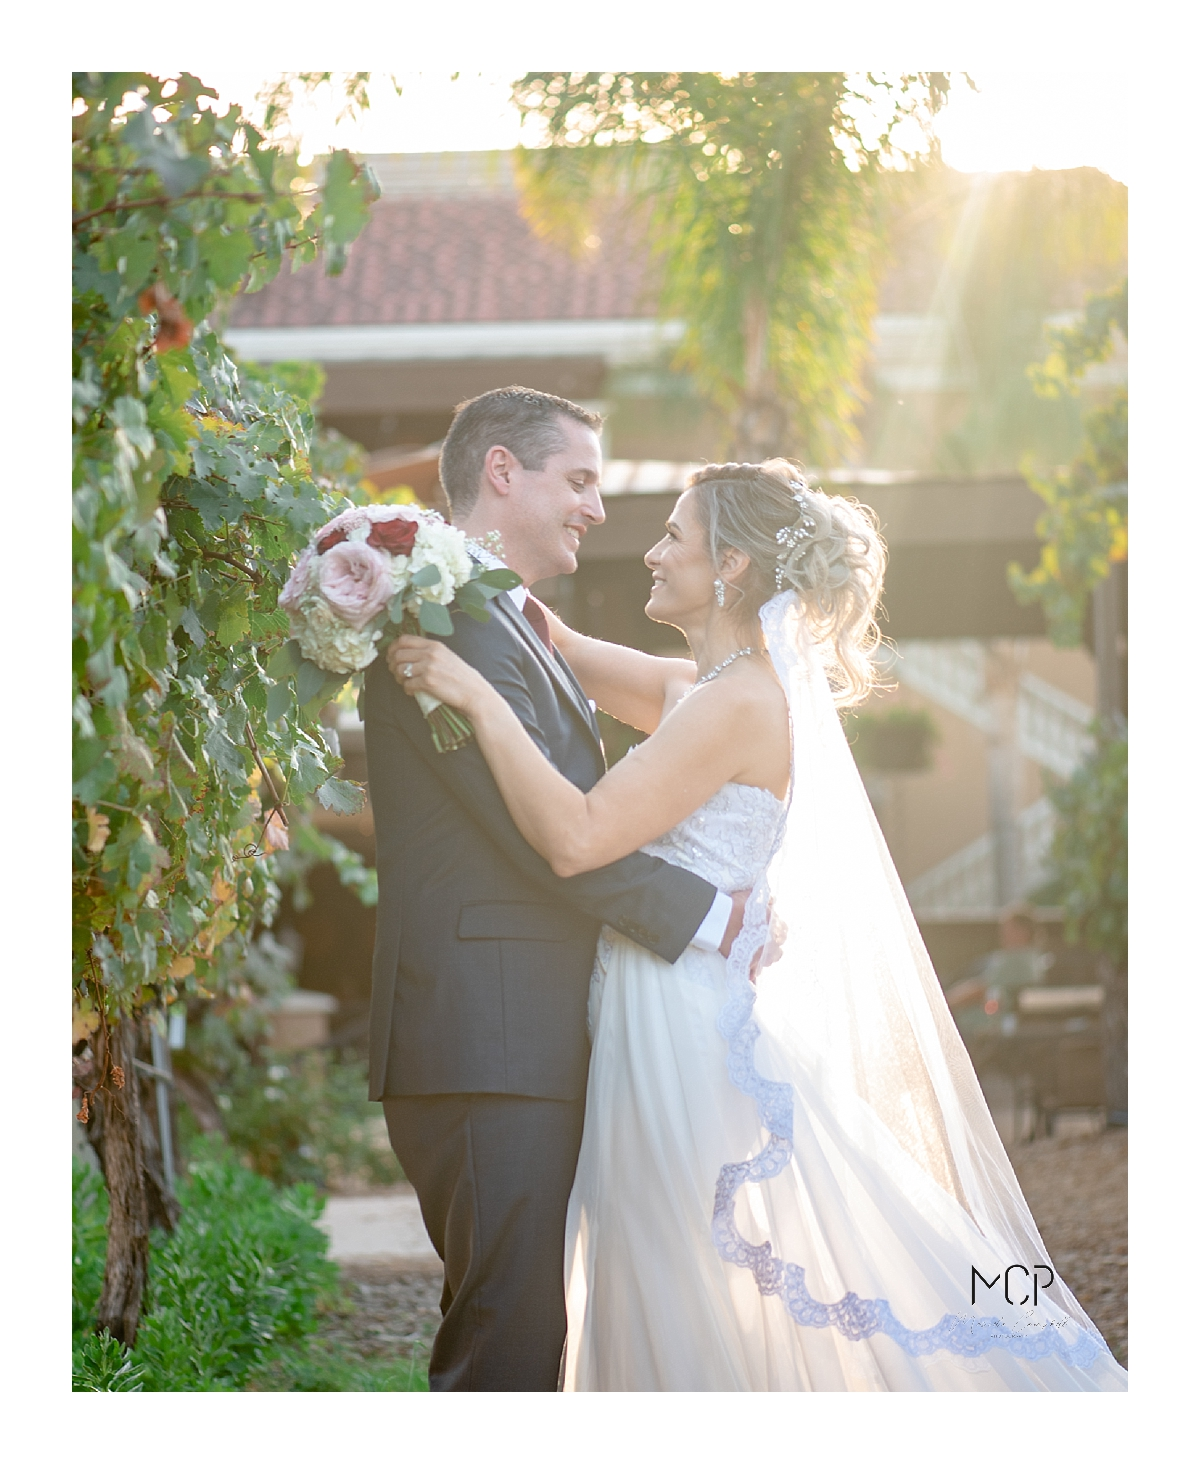 Marisela + Jared-BLOG-MCP29.jpg